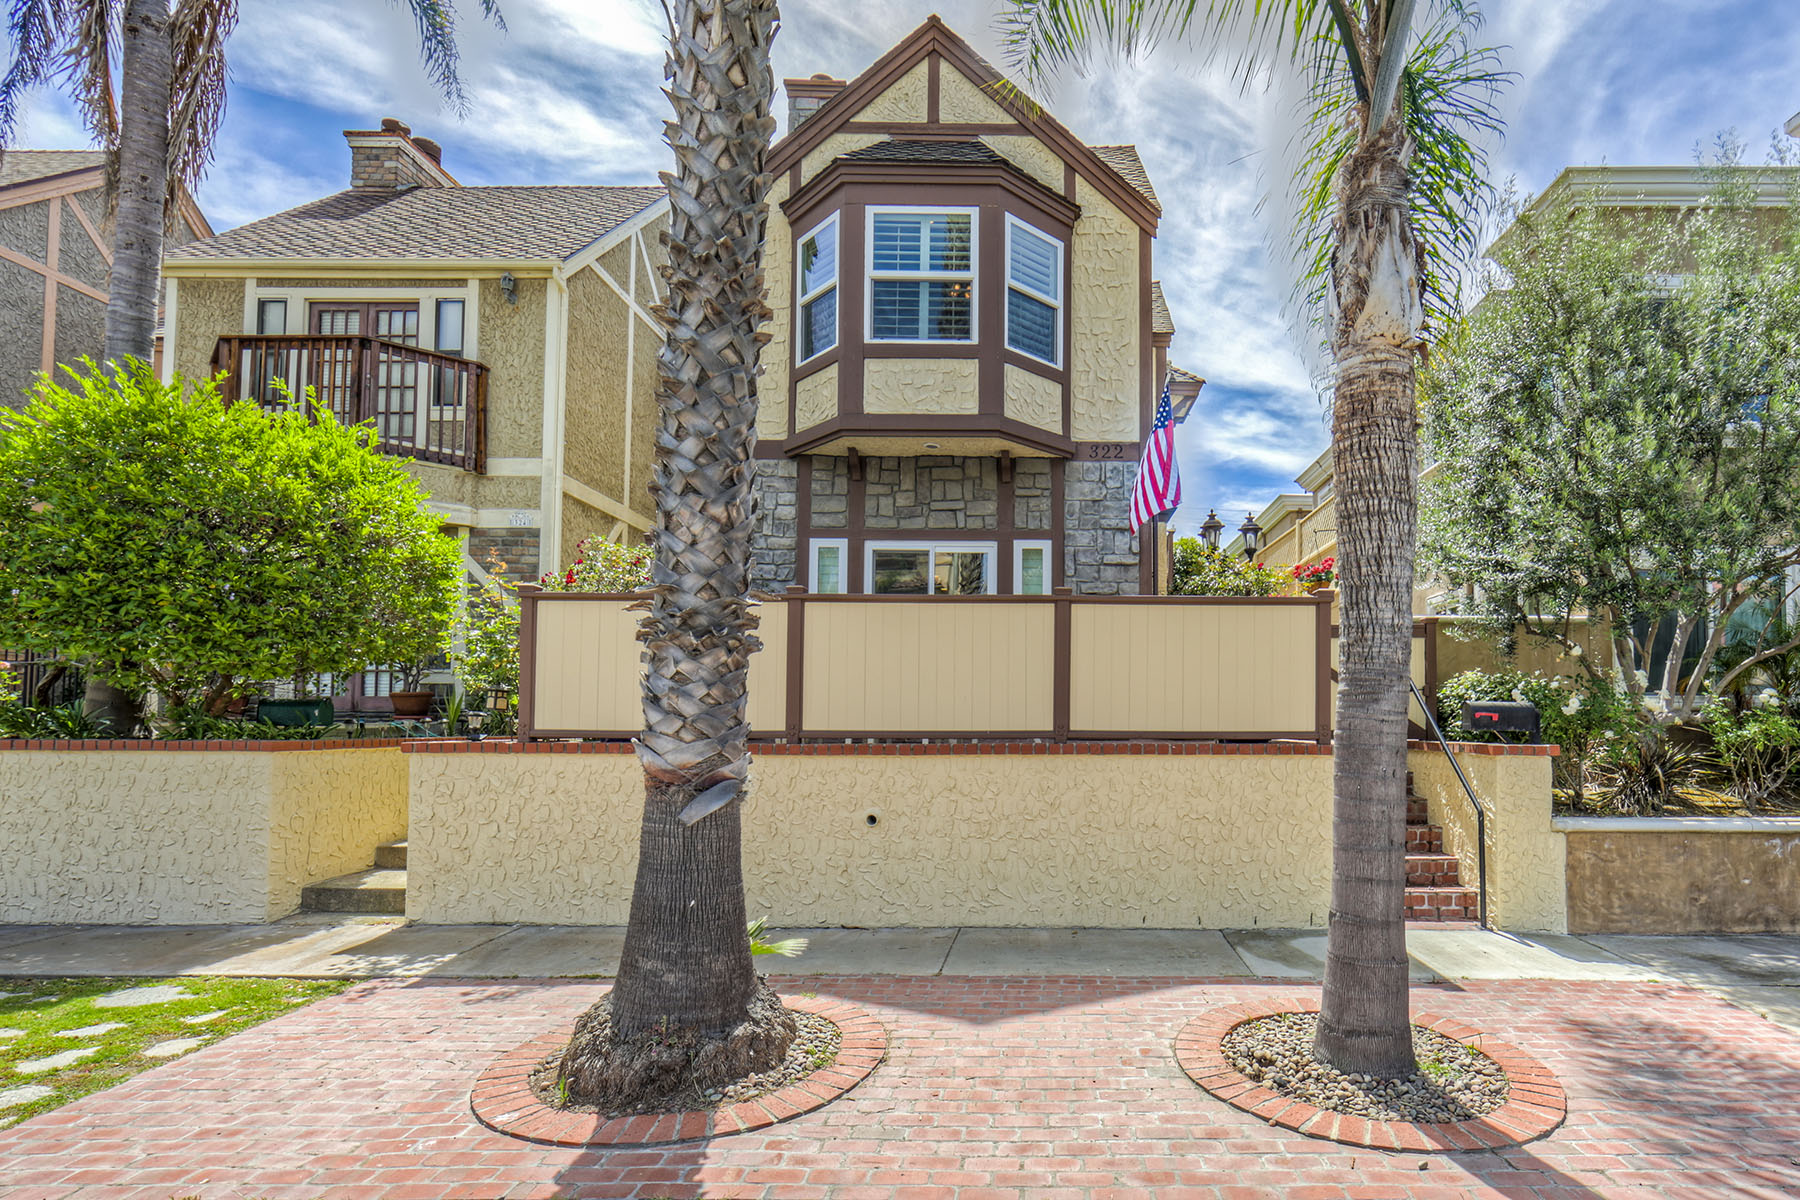 Single Family Home for Sale at 322 18th Street Huntington Beach, California 92648 United States